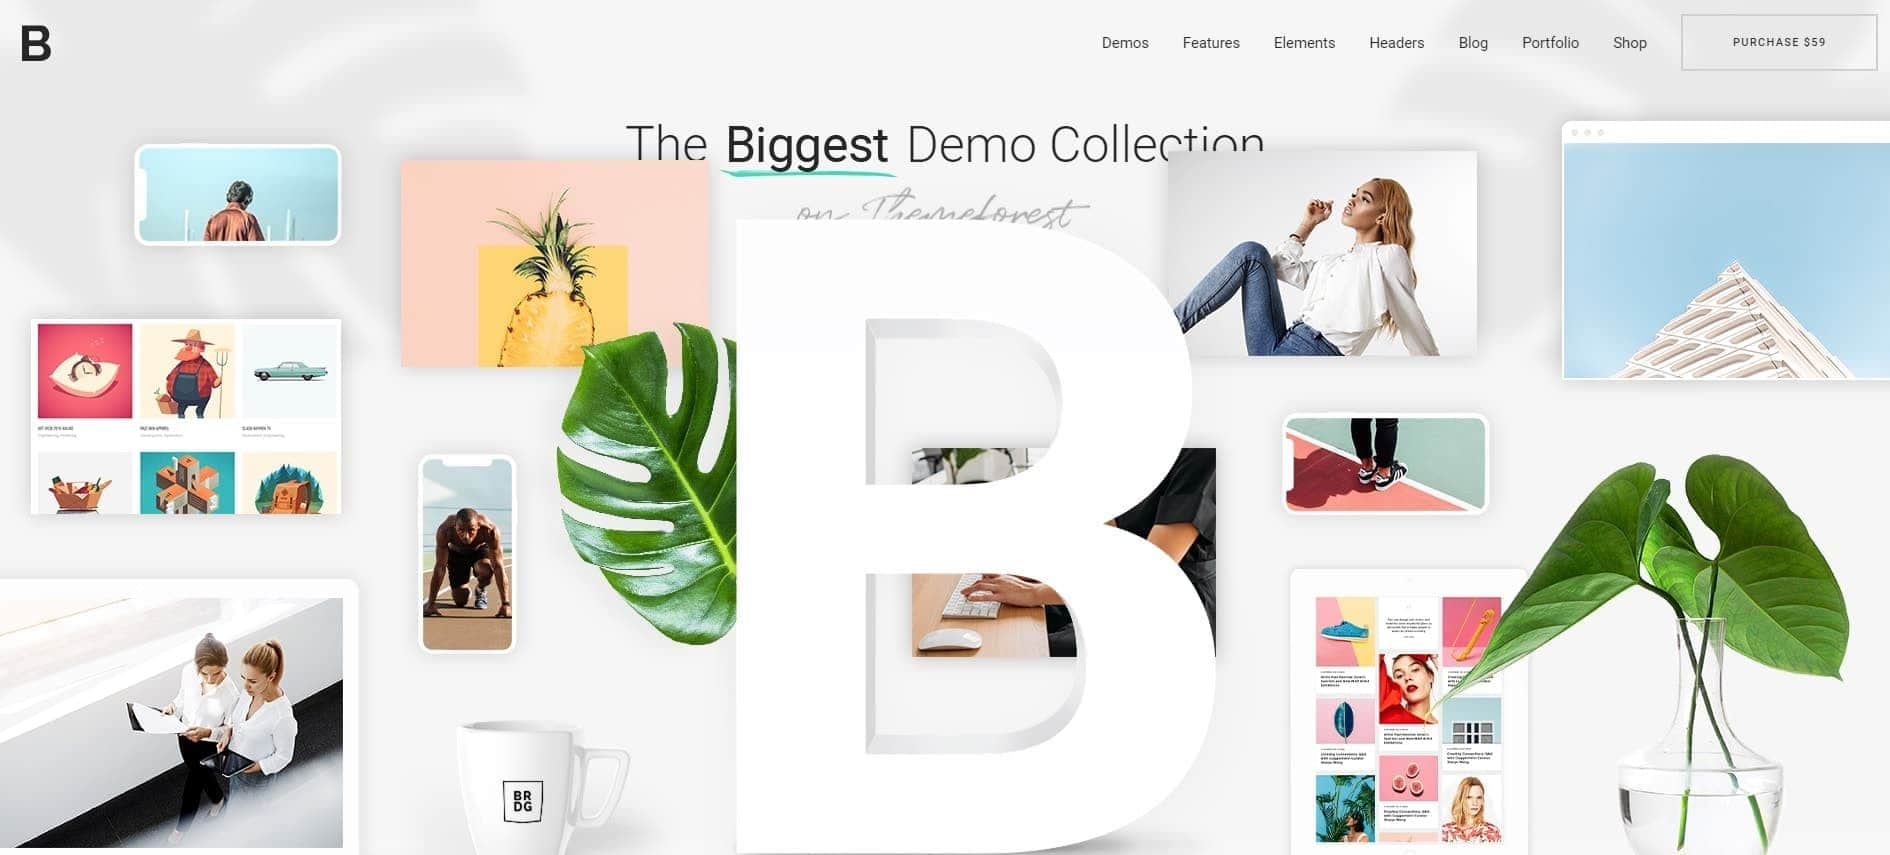 be-wordpress-theme